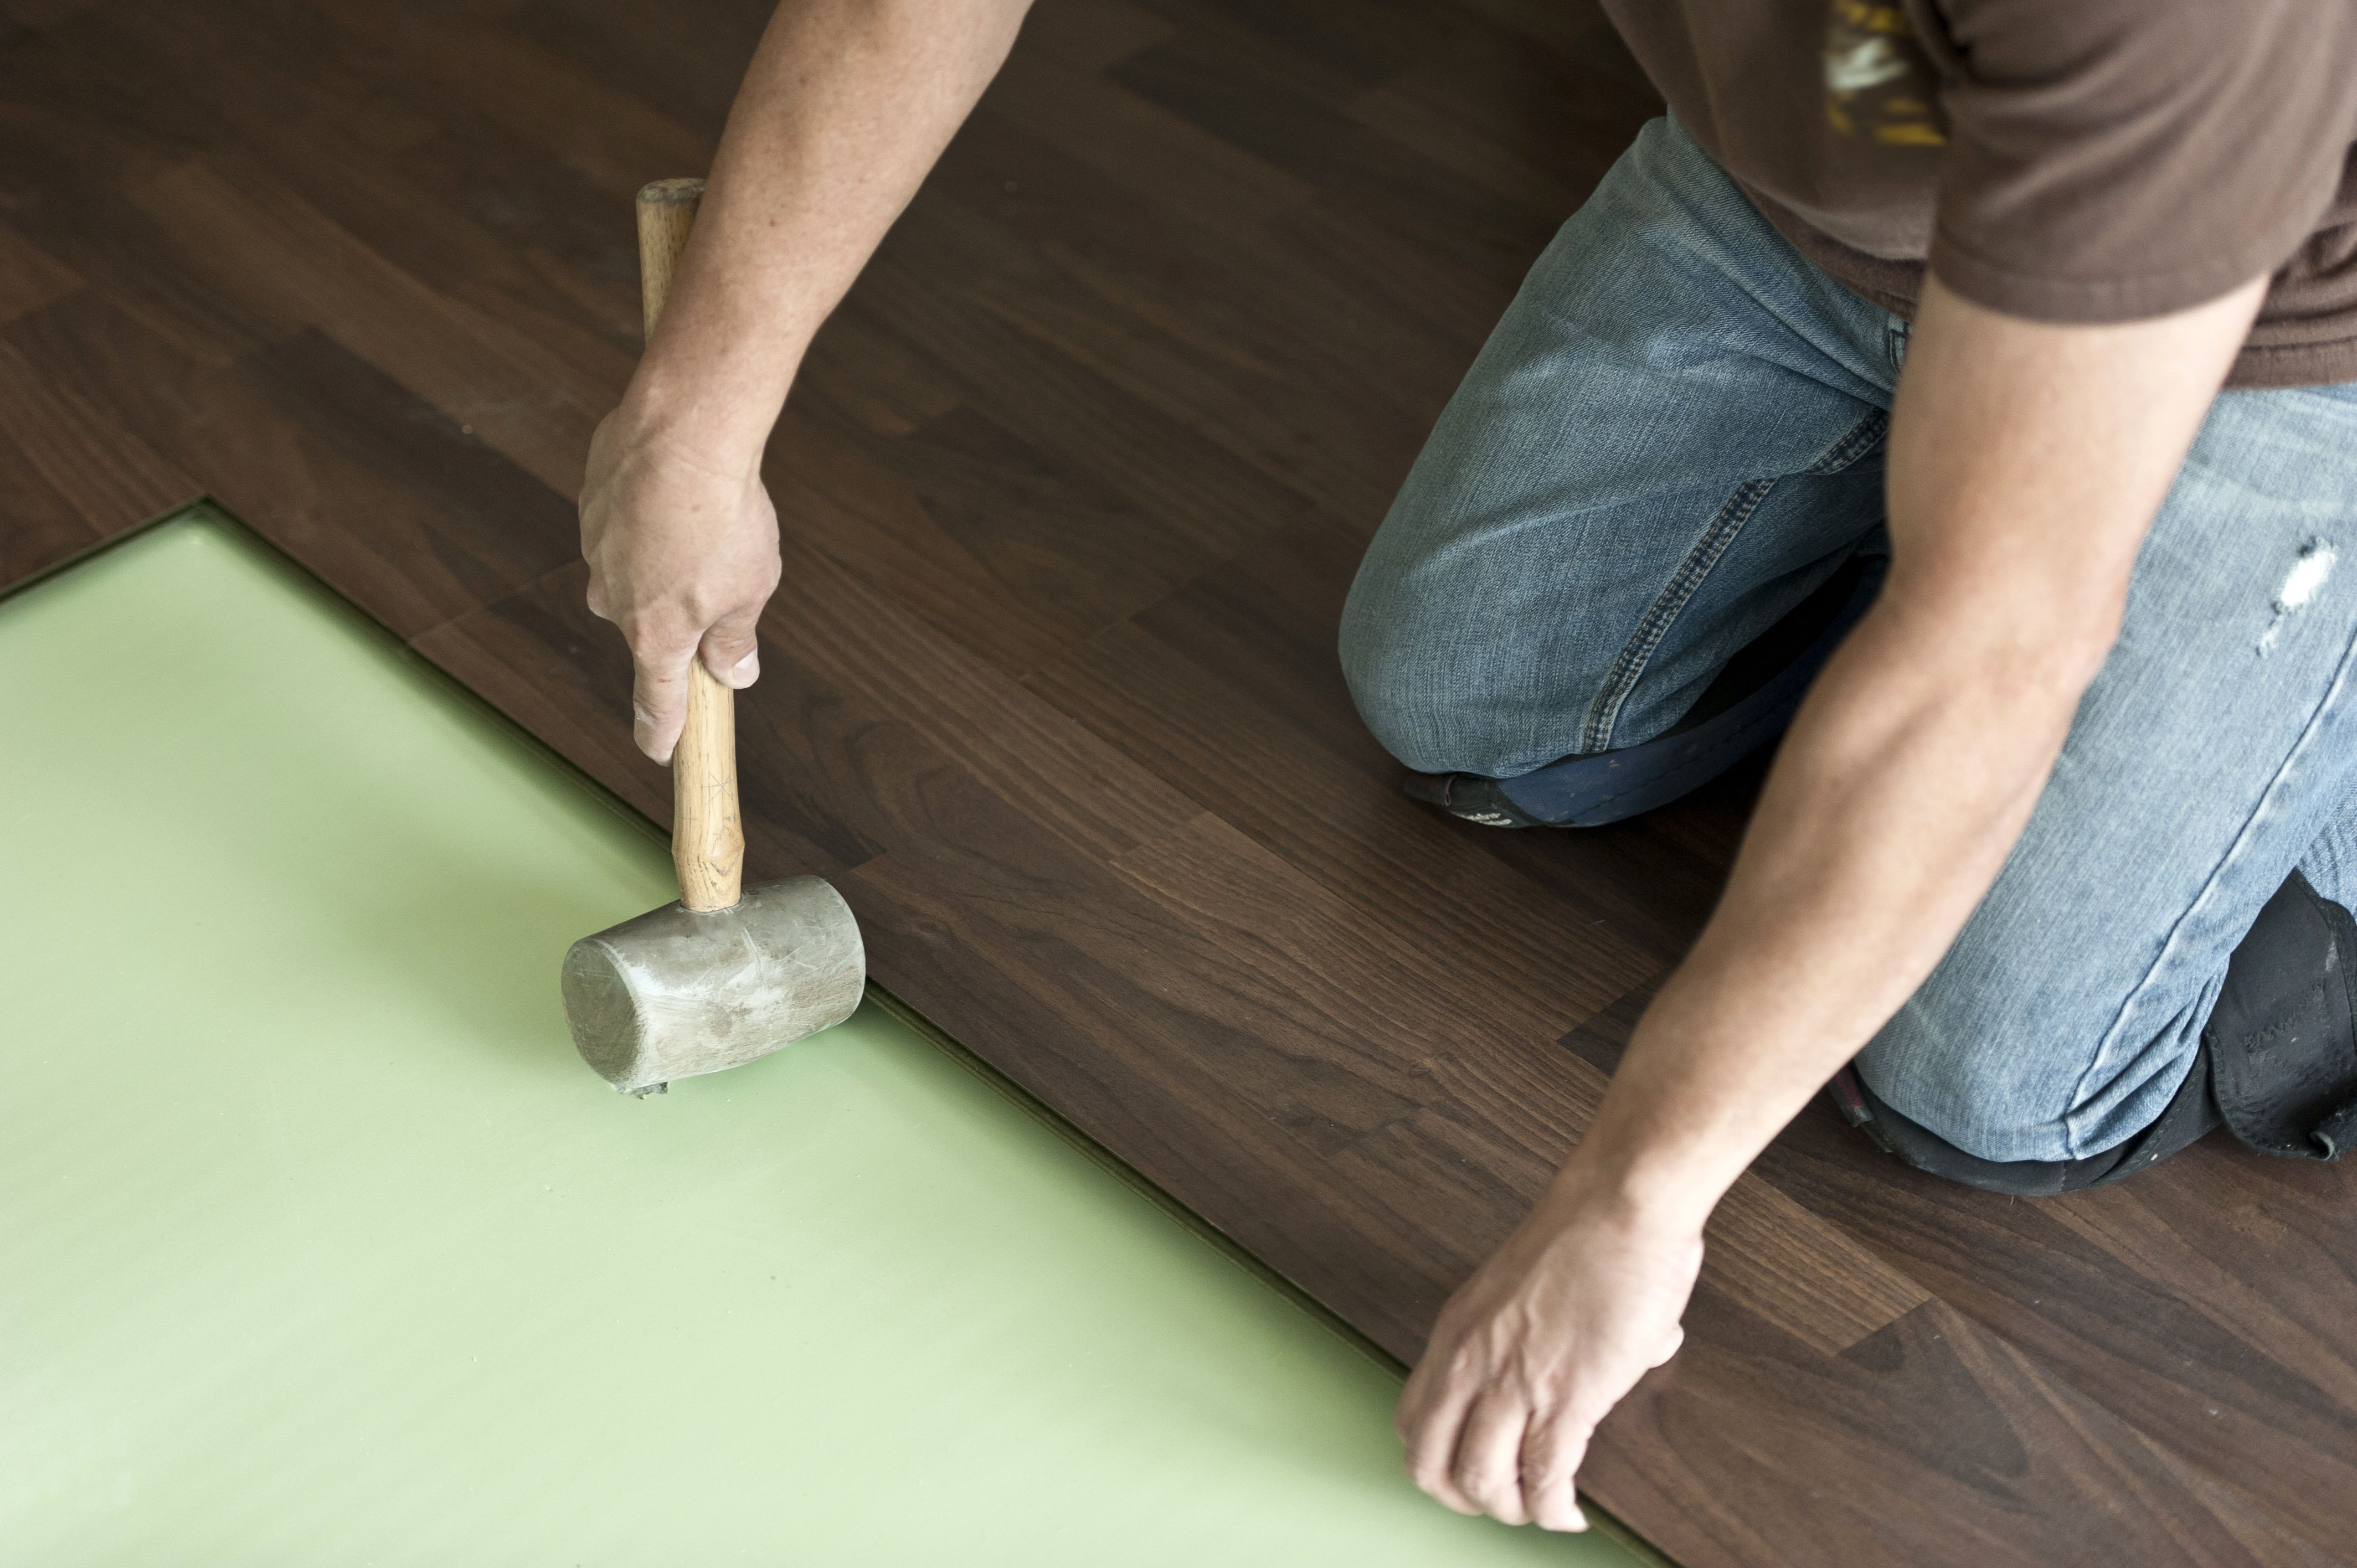 hardwood flooring engineered vs solid cost of can a foam pad be use under solid hardwood flooring regarding installing hardwood floor 155149312 57e967d45f9b586c35ade84a